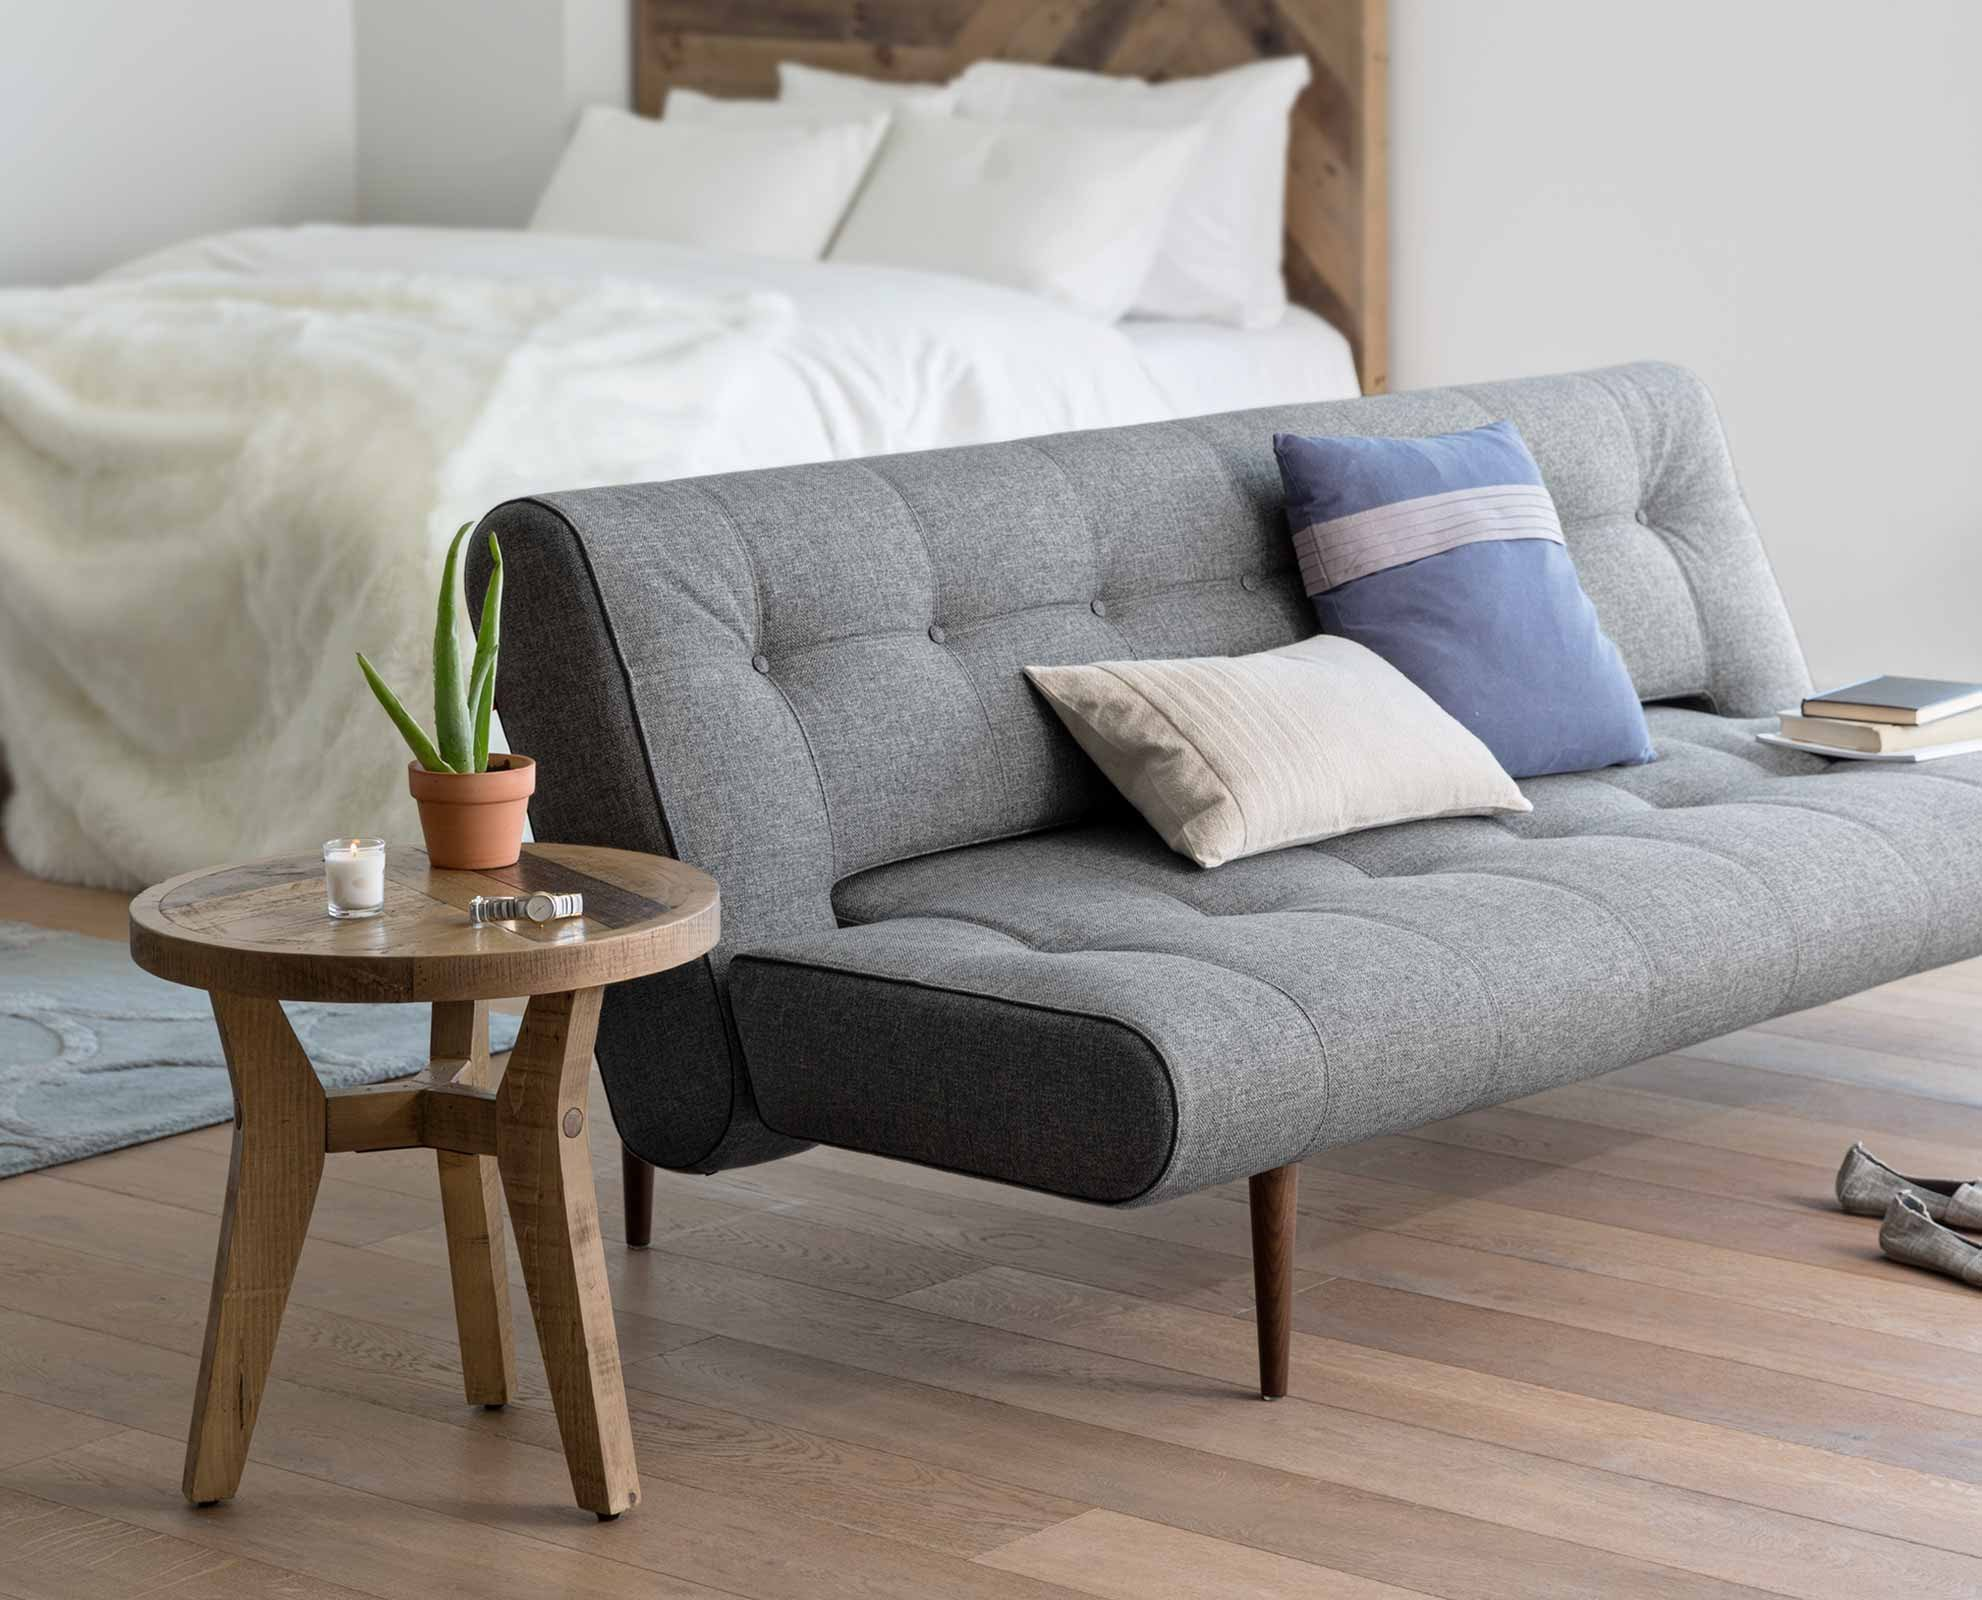 Tropeca Convertible Sofa Couches for small spaces, Grey